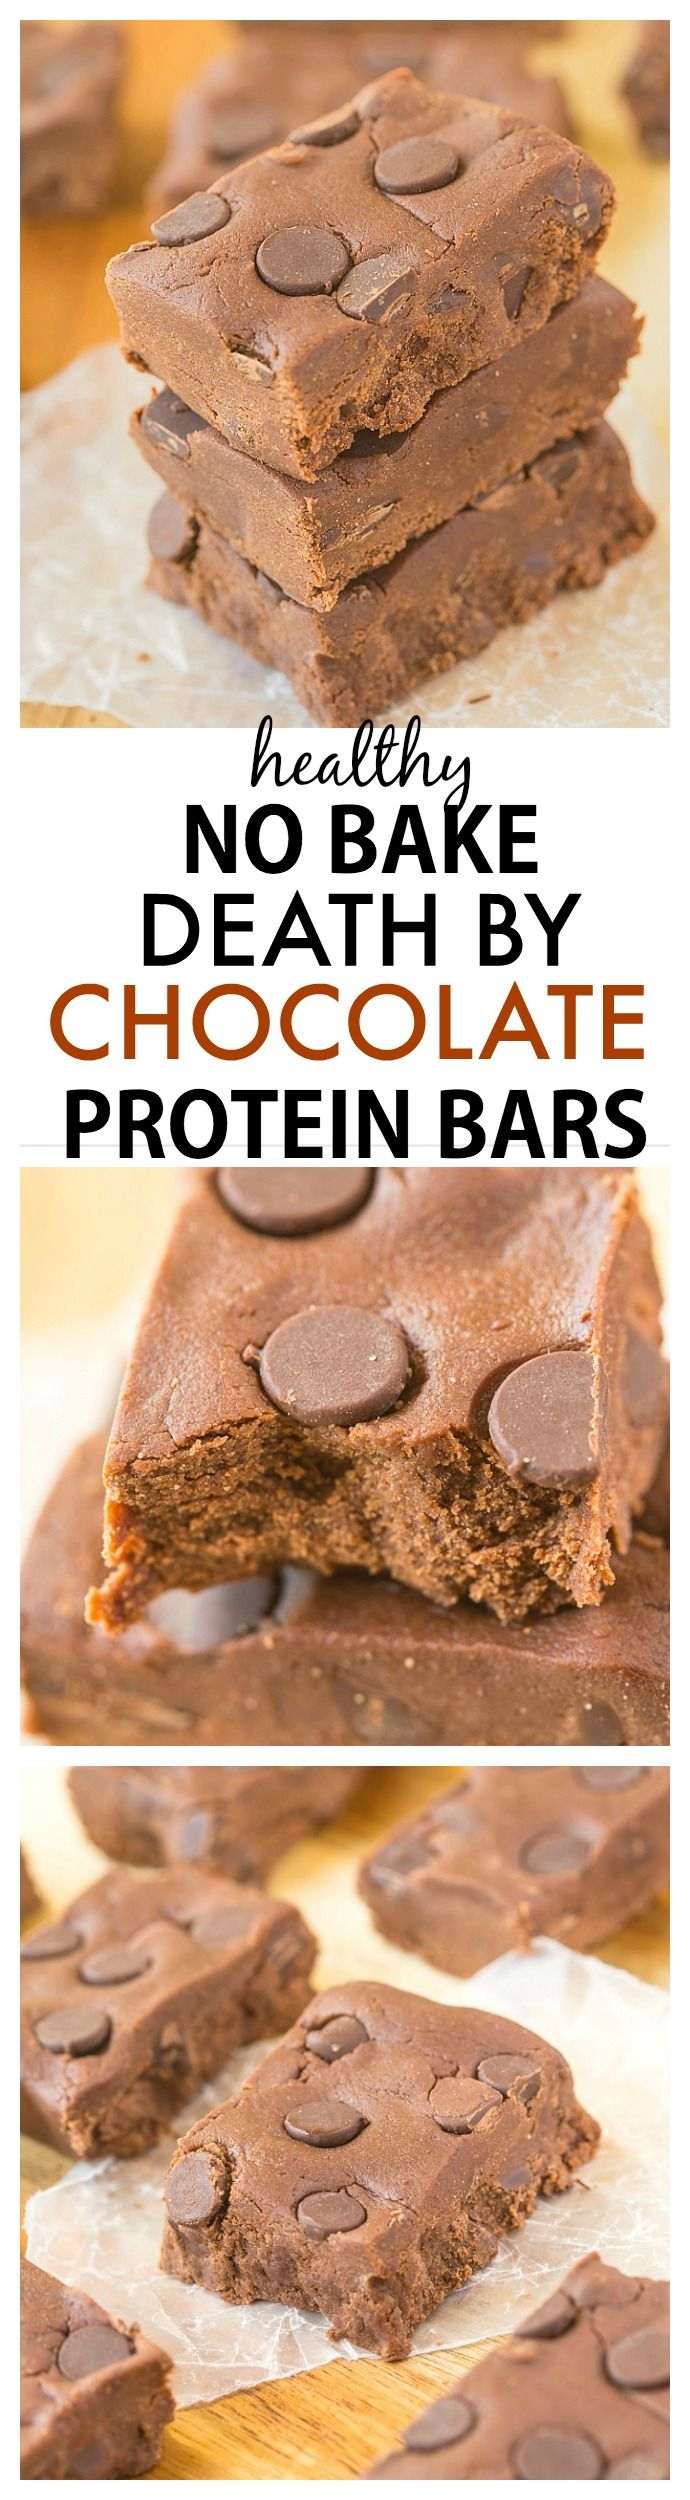 Healthy No Bake Death By Chocolate Protein Bar recipe- Chewy, packed full of chocolate and protein and ready in just ten minutes, this healthy, quick and easy snack bar is SO delicious! vegan, gluten free, sugar free and paleo option From @thebigmansw